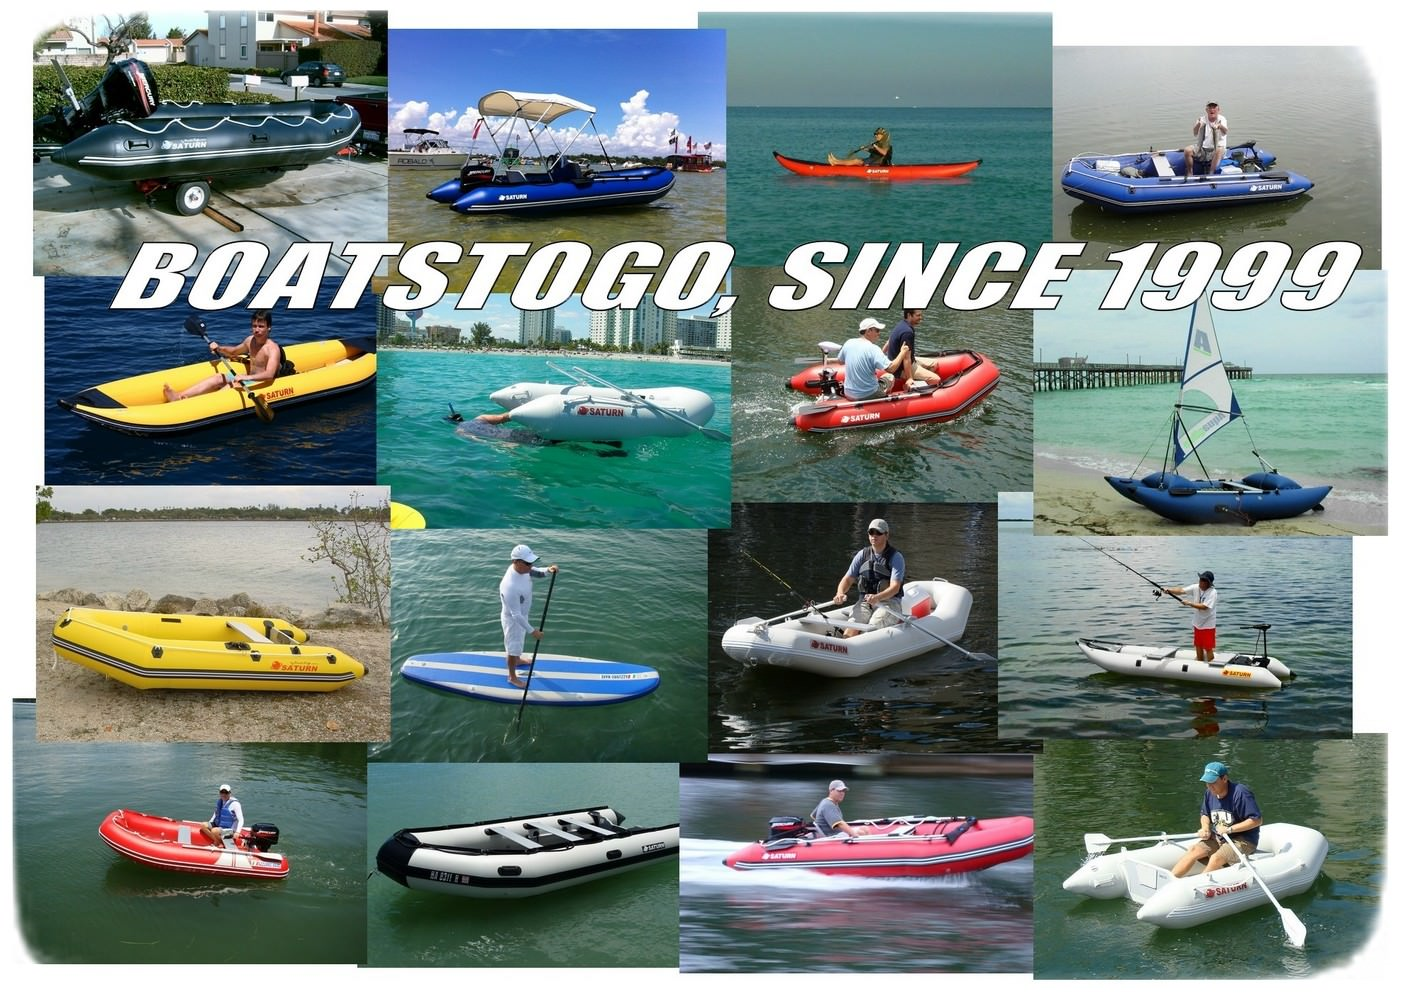 About BoatsToGo